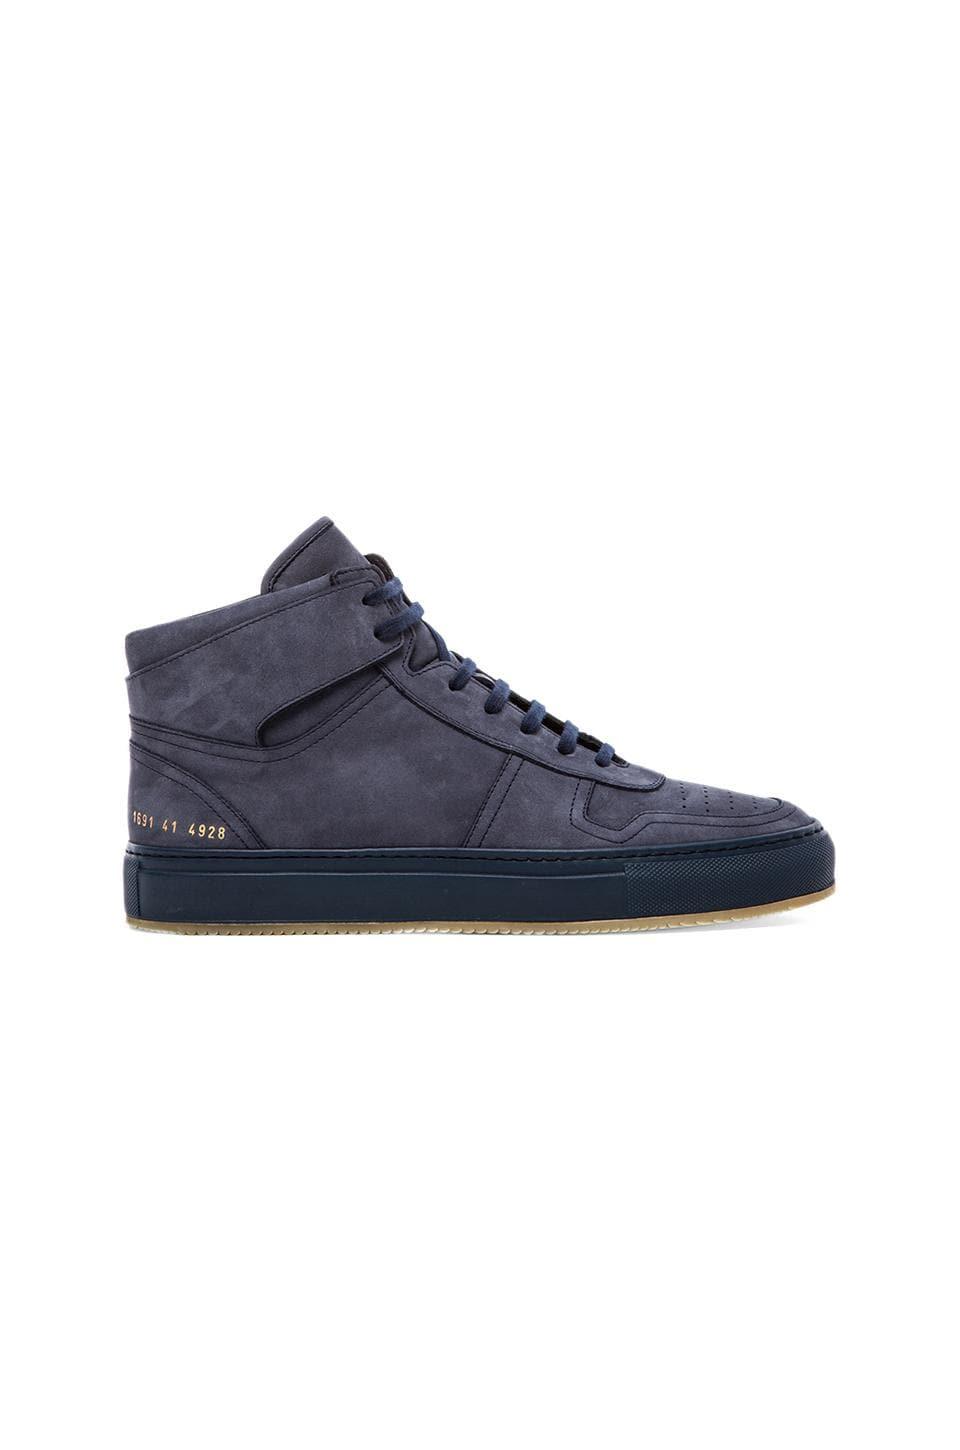 Common Projects Bball High in Navy